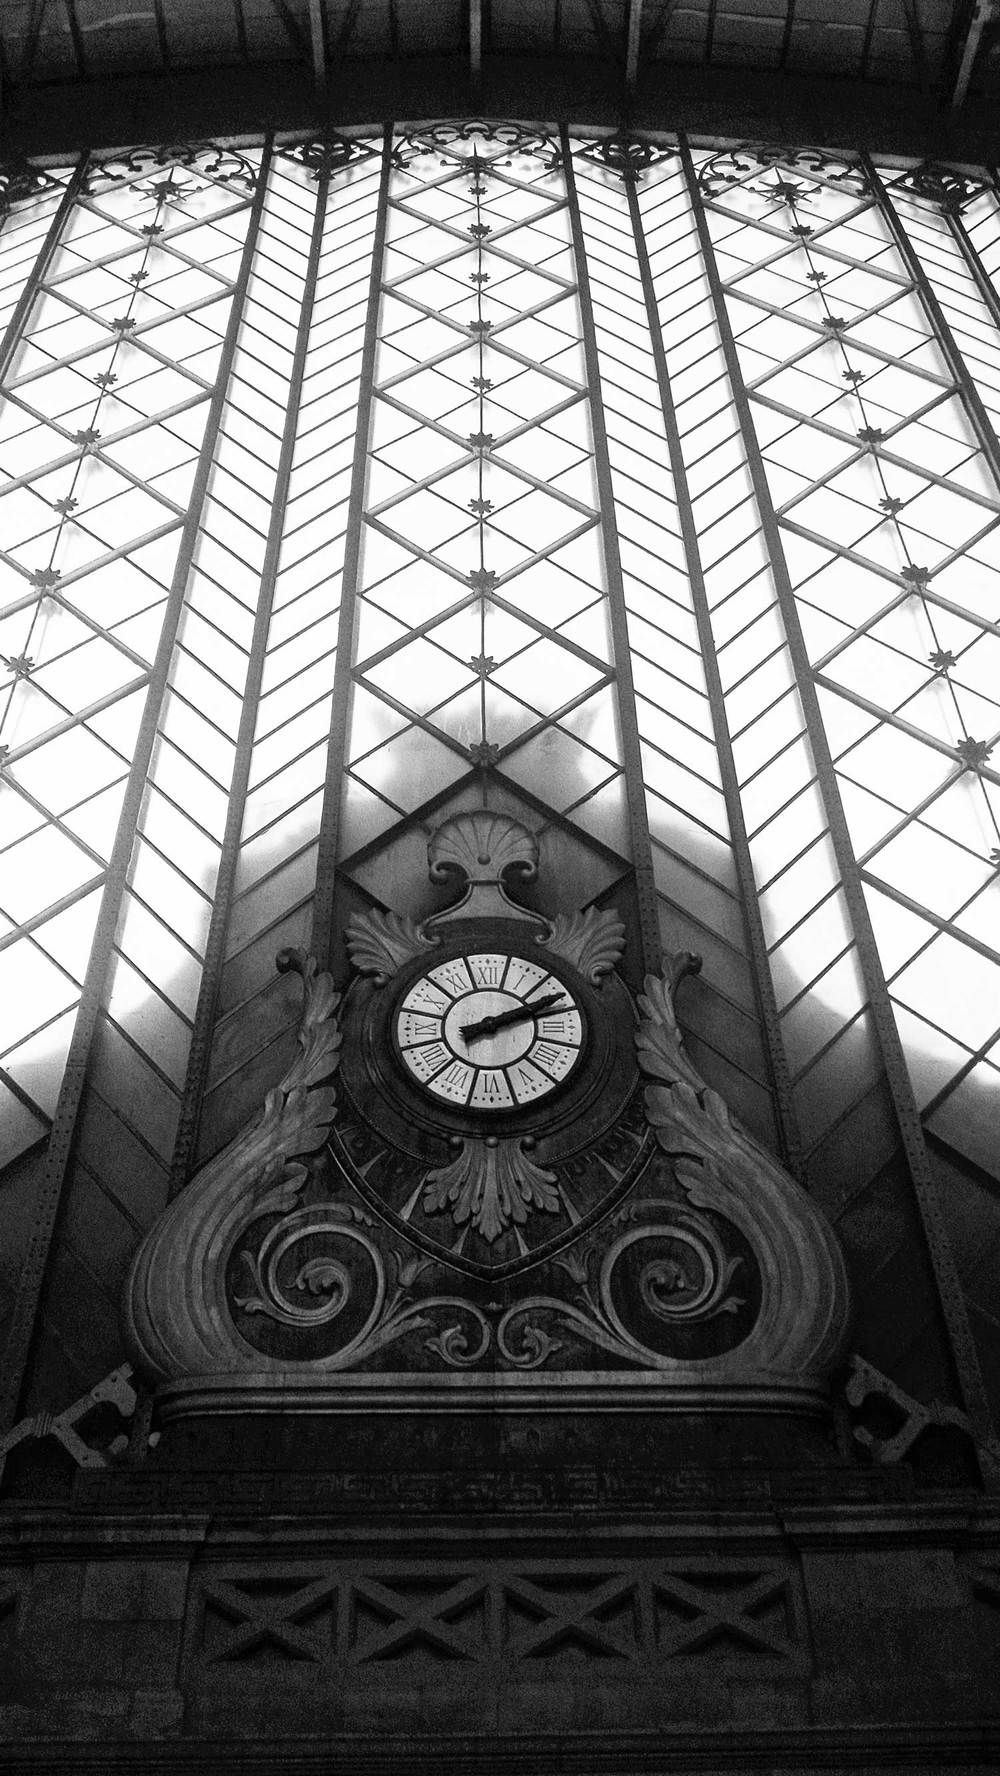 OG-Madrid_Atocha_Station_Vertical-Madrid_Spain-062015-BW-WEB-1500.jpg